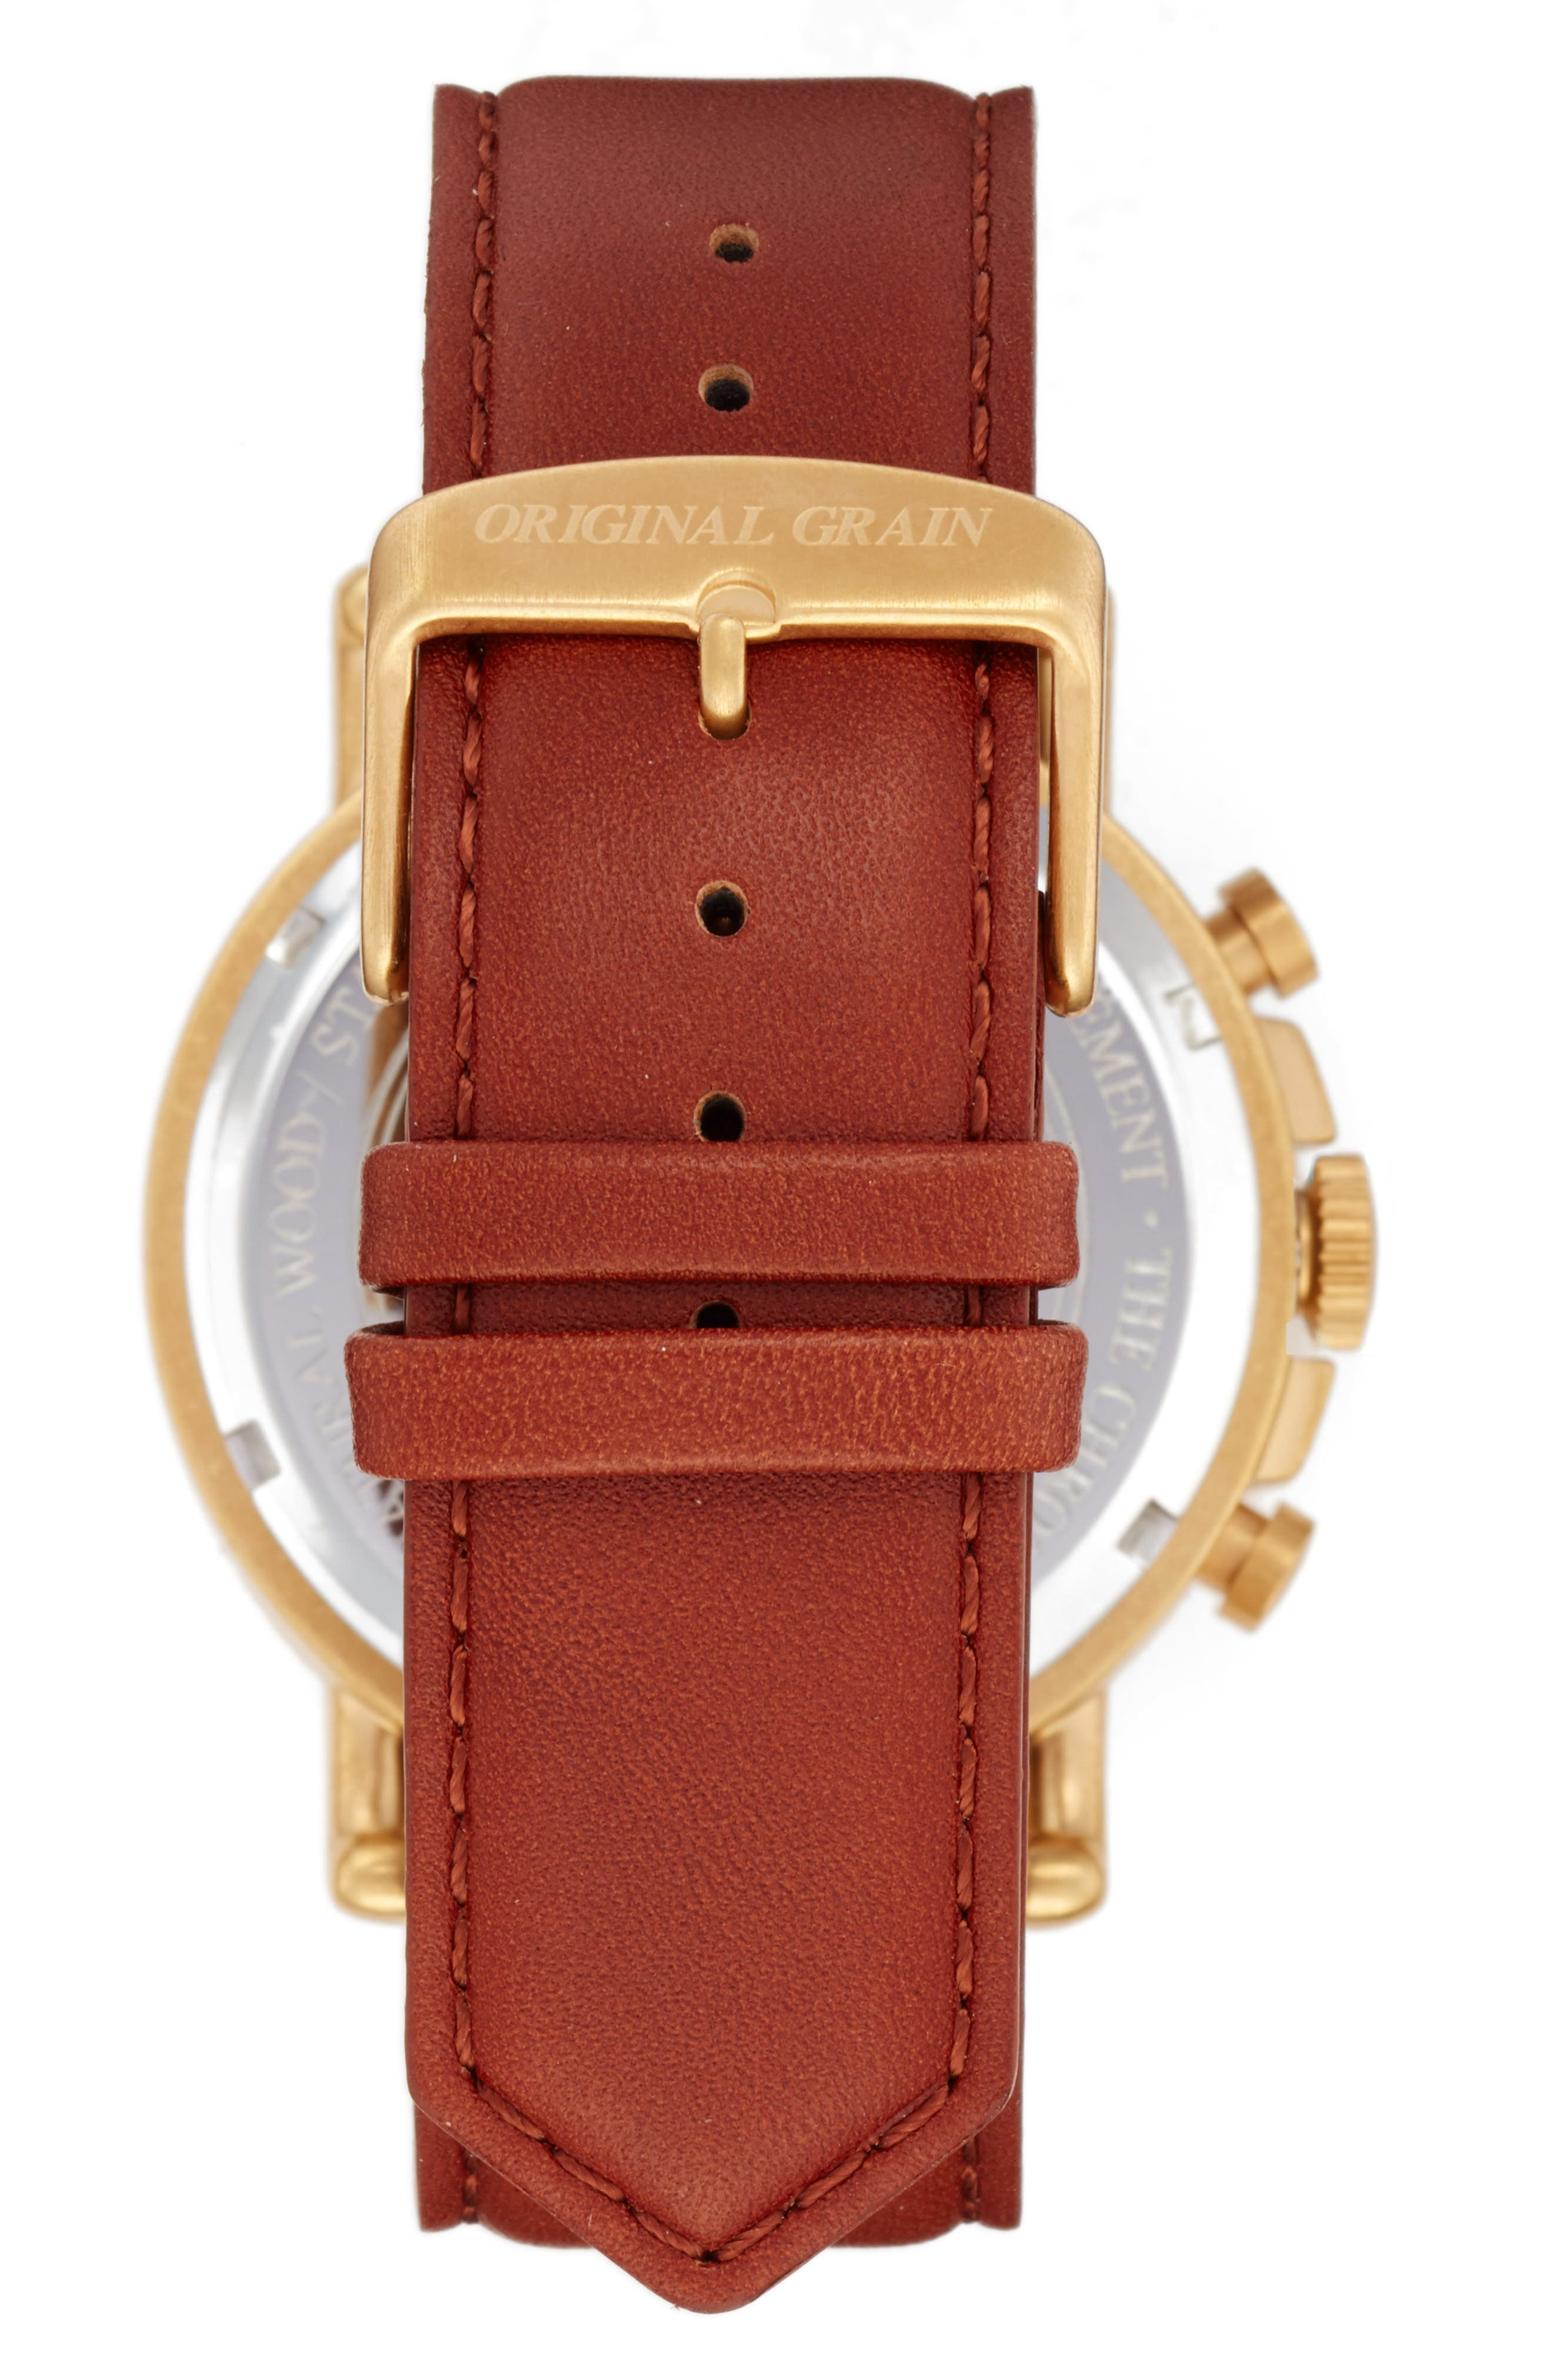 Alternate Image 2  - Original Grain Alterra Chronograph Leather Strap Watch, 44mm